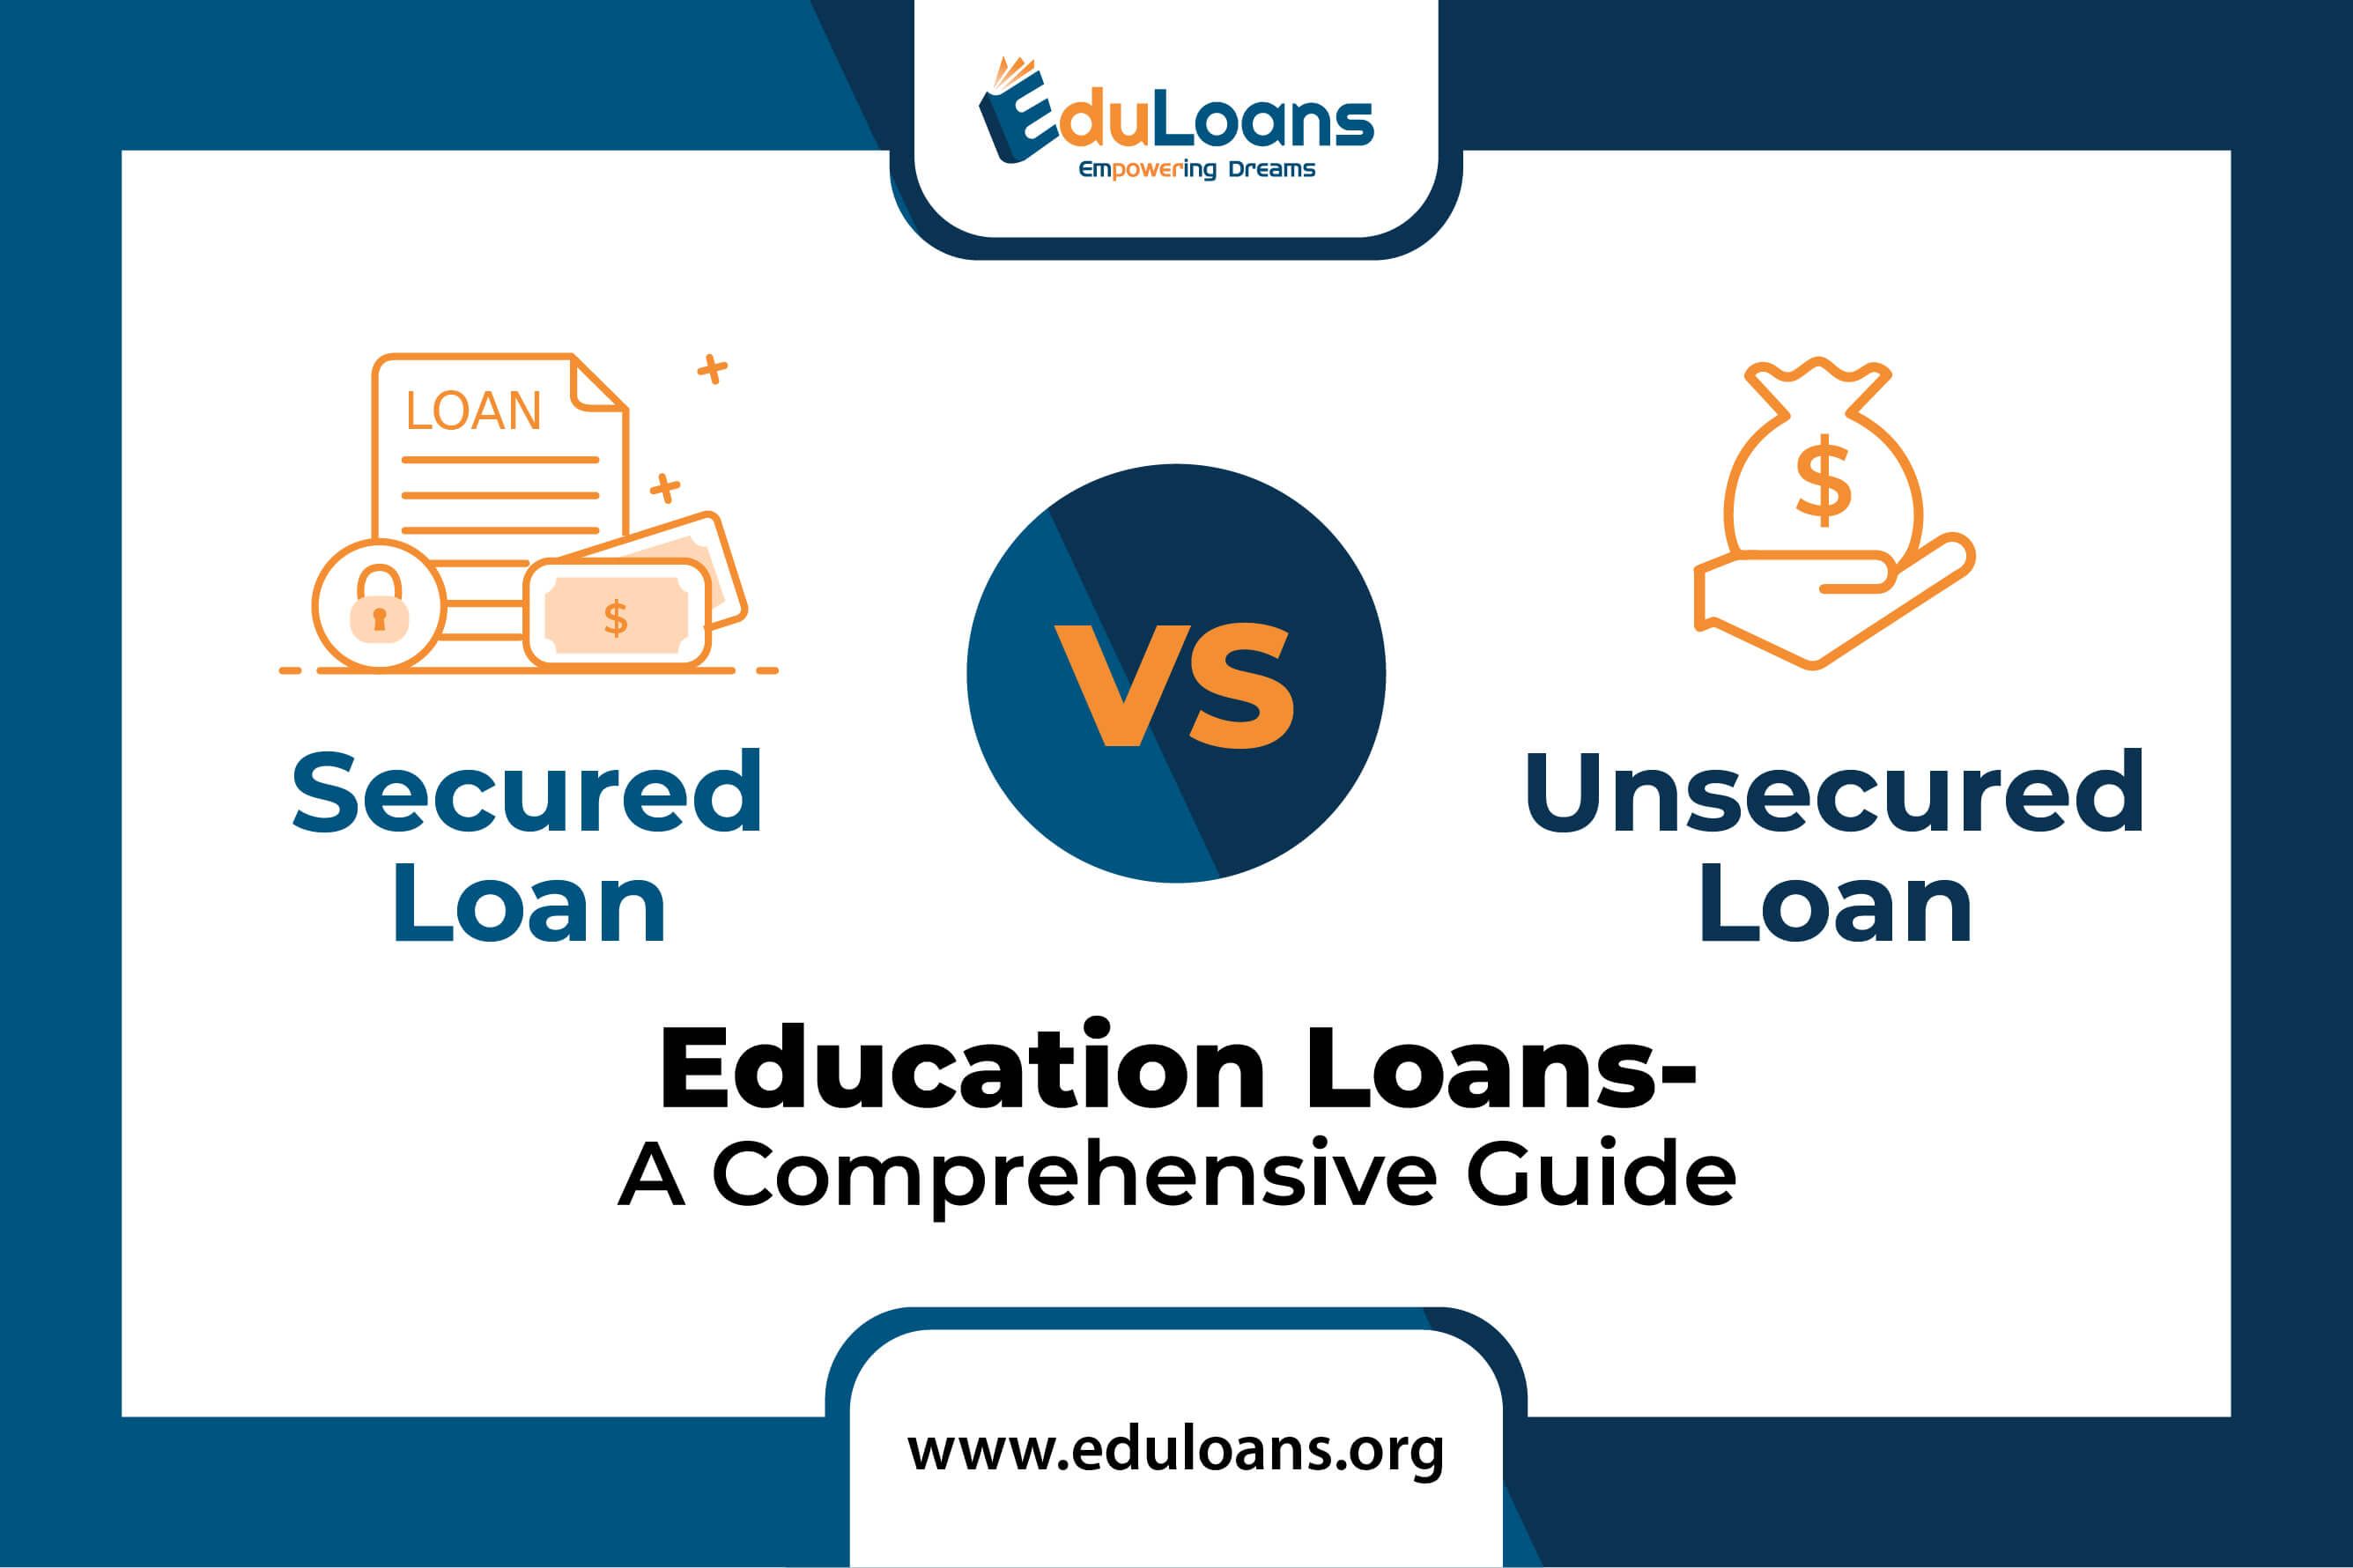 Secured vs. Unsecured education loans: A Comprehensive guide